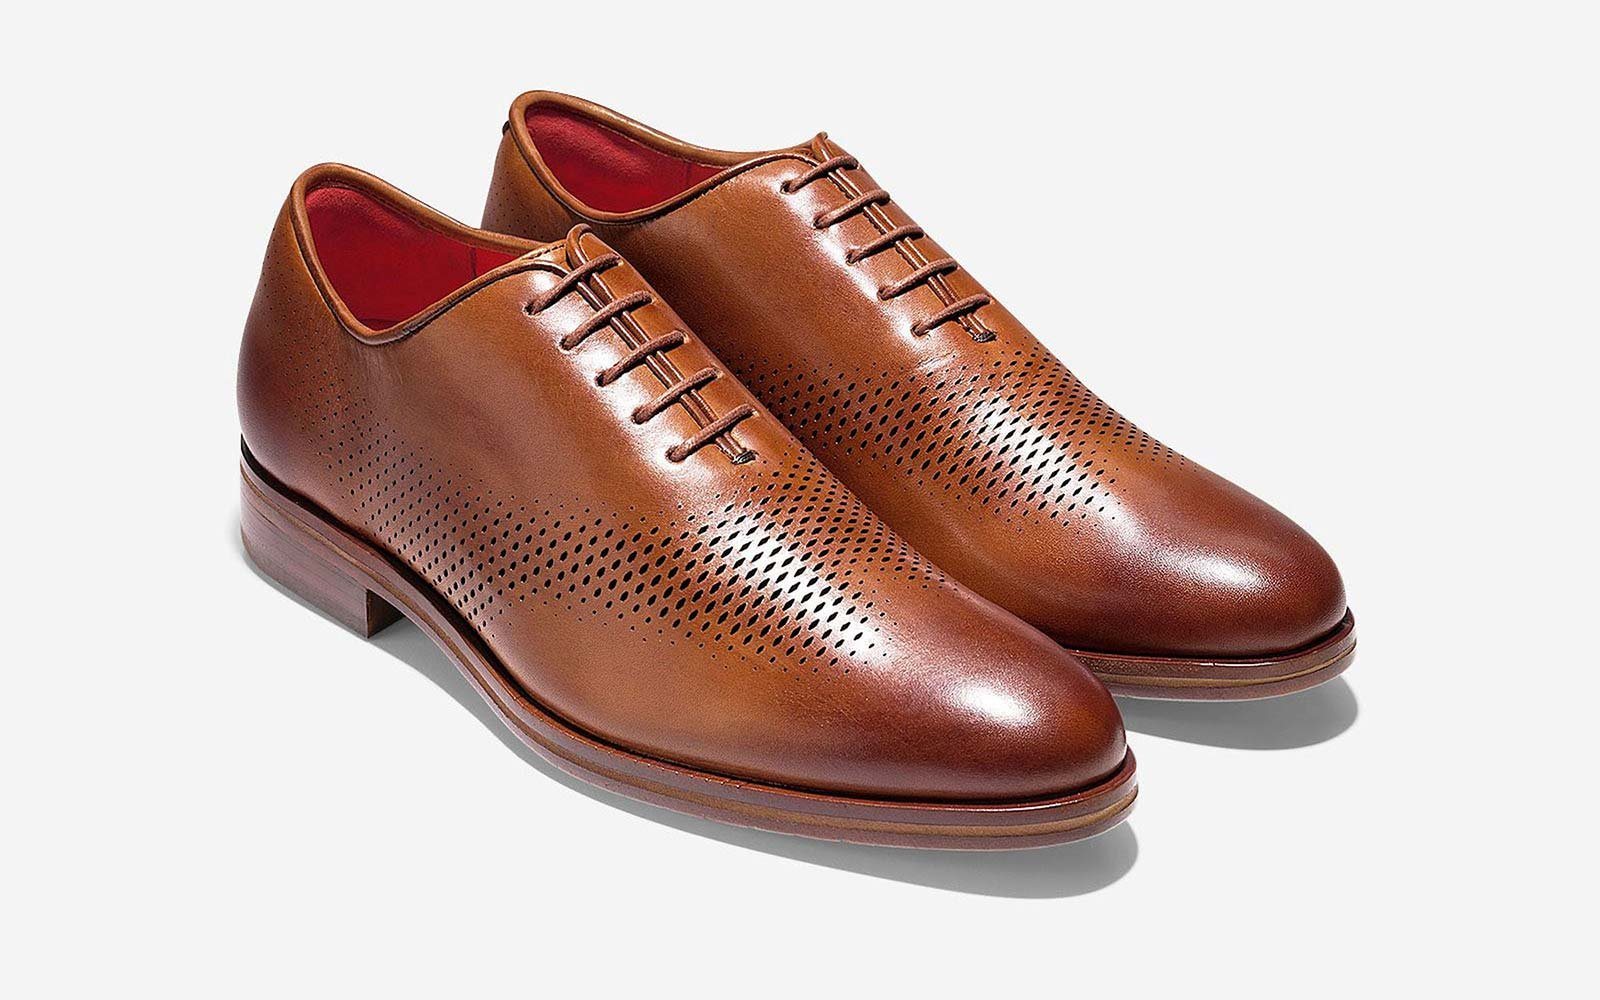 Cole Haan Wingtip Oxford Shoe